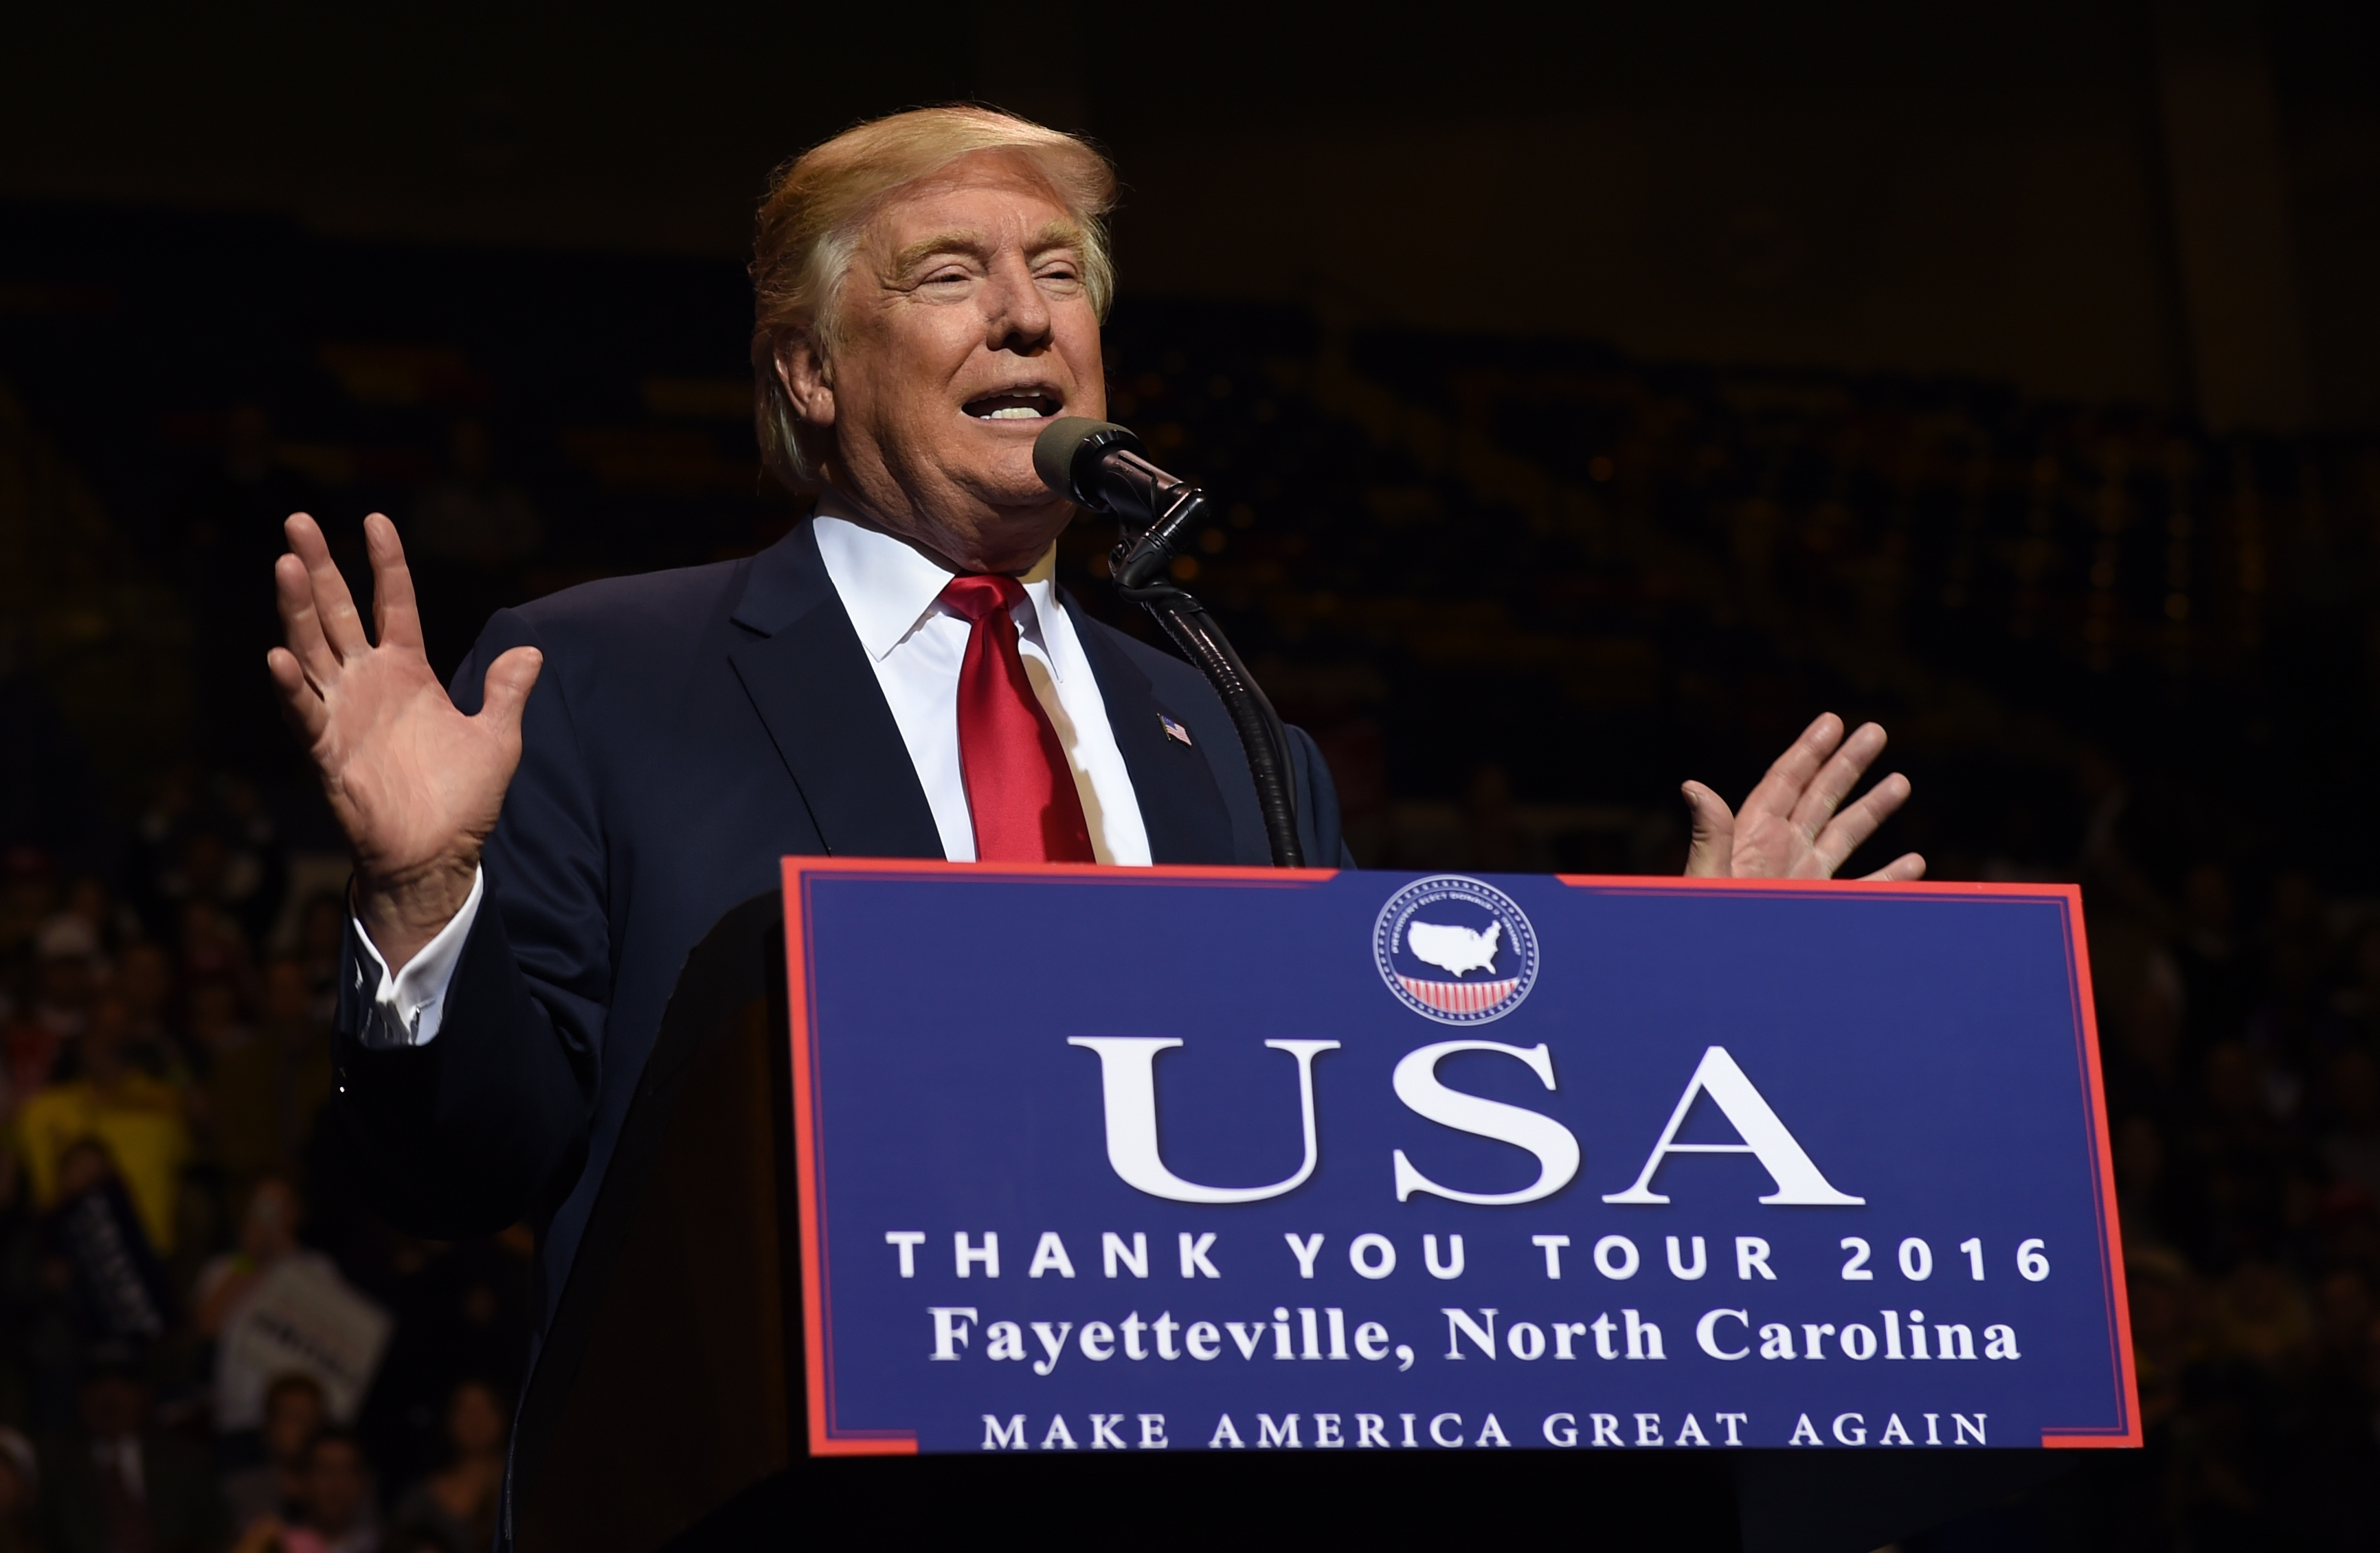 President-elect Donald Trump speaks at the Crown Coliseum in Fayetteville, North Carolina on December 6, 2016 during his USA Thank You Tour. (credit: TIMOTHY A. CLARY/AFP/Getty Images)